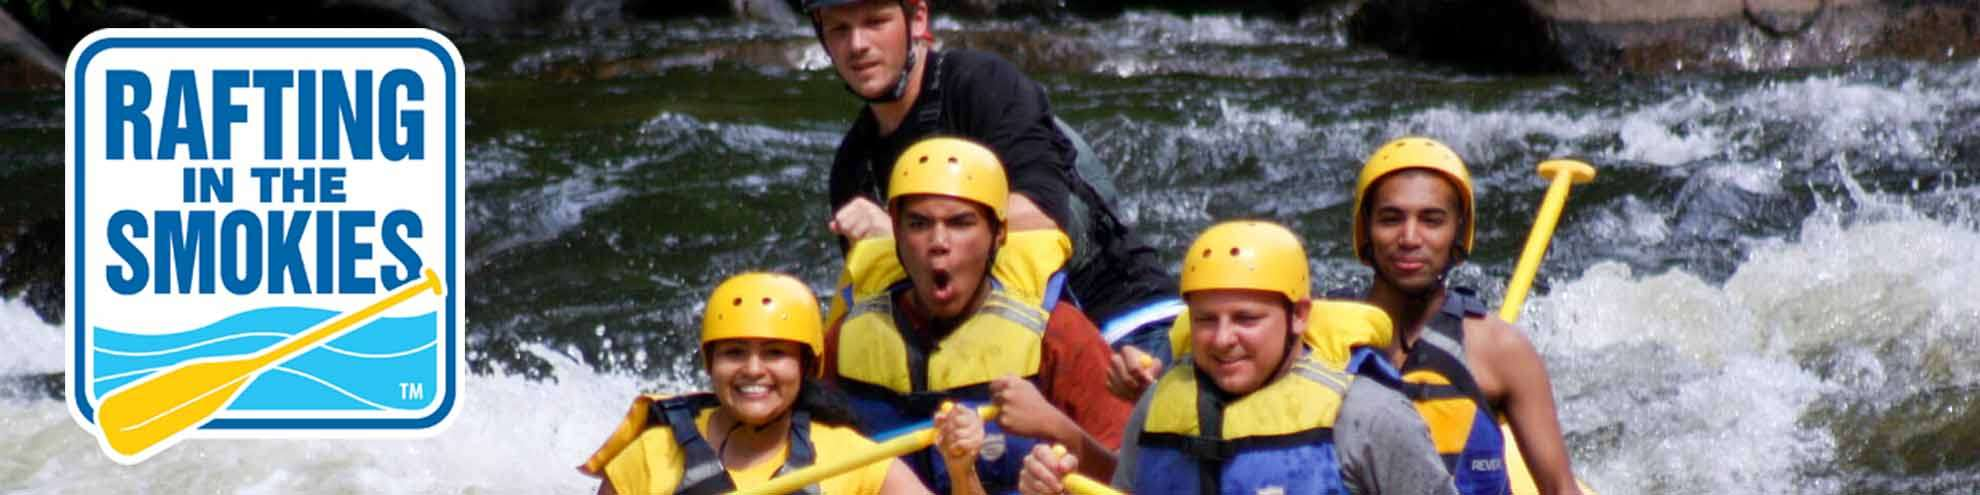 Rafting in the Smokies Discount Tickets